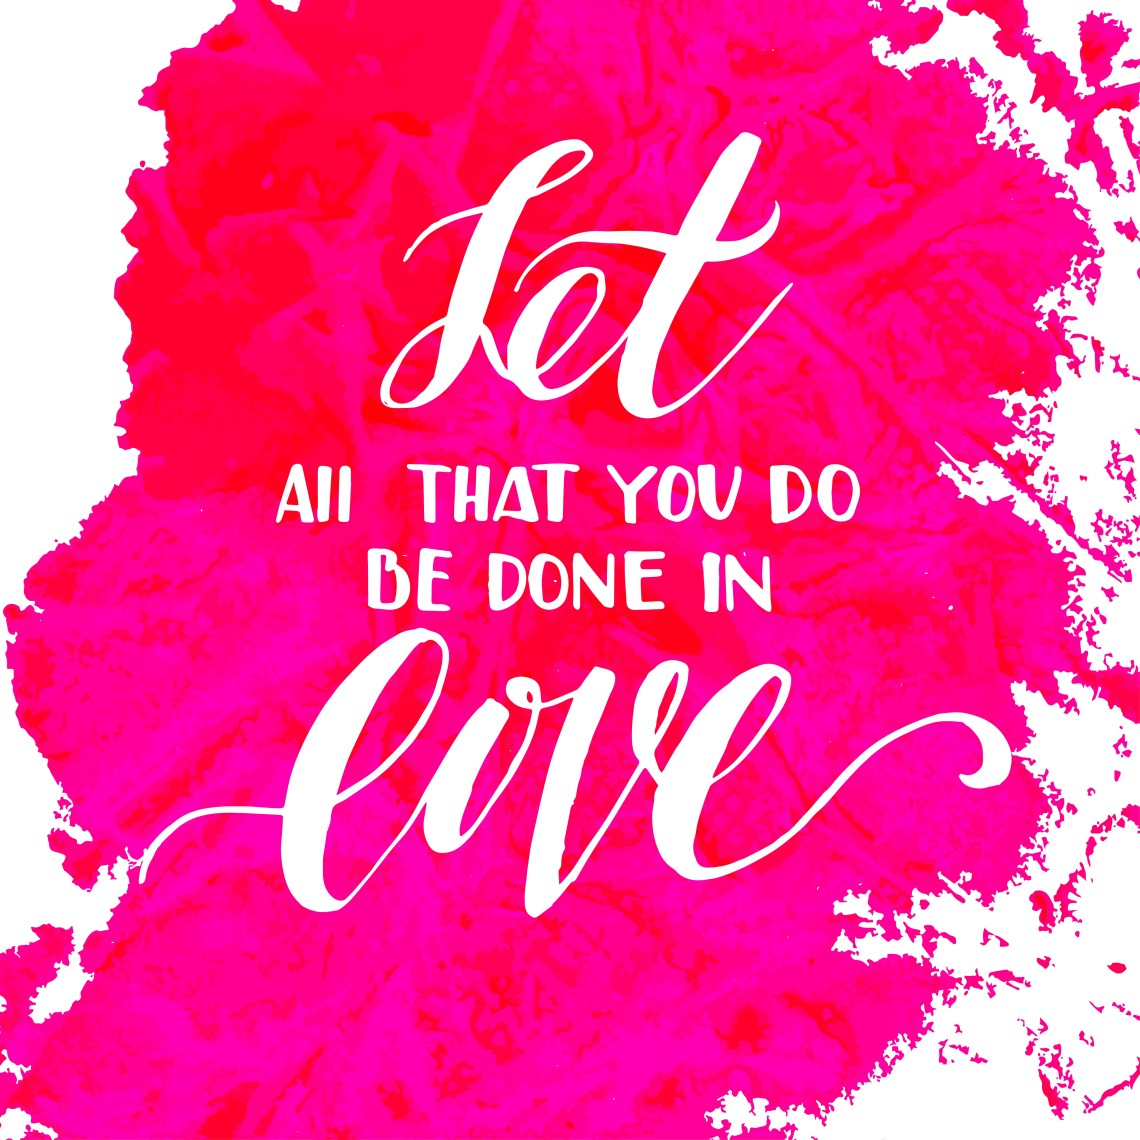 Download Let all that you do be done in love. - Download Free ...